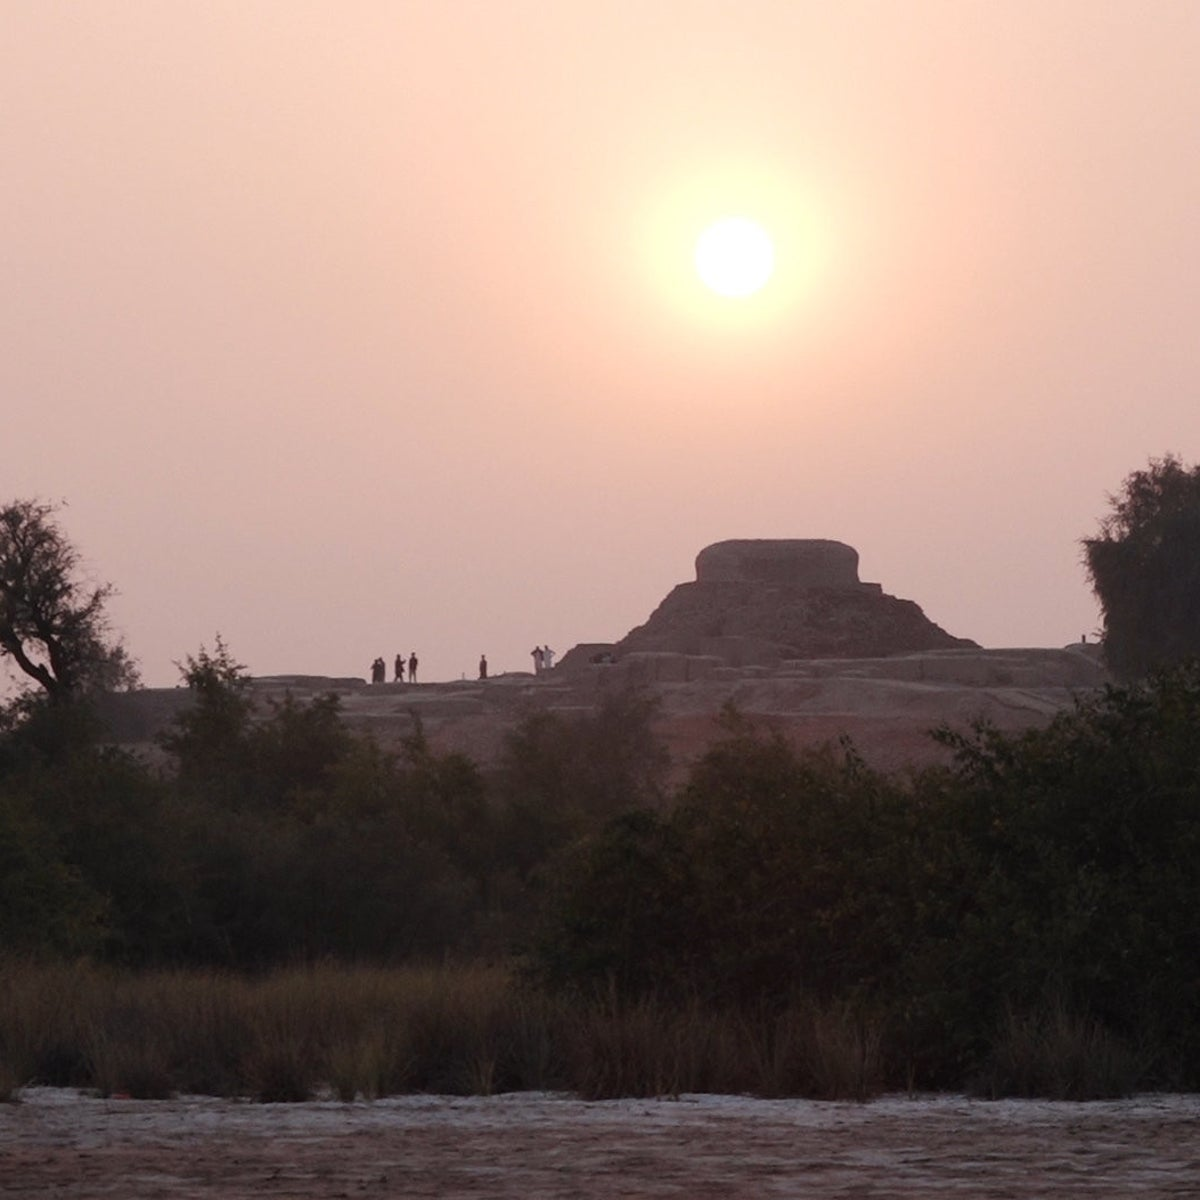 The sun sets over the stupa at Mohenjo Daro